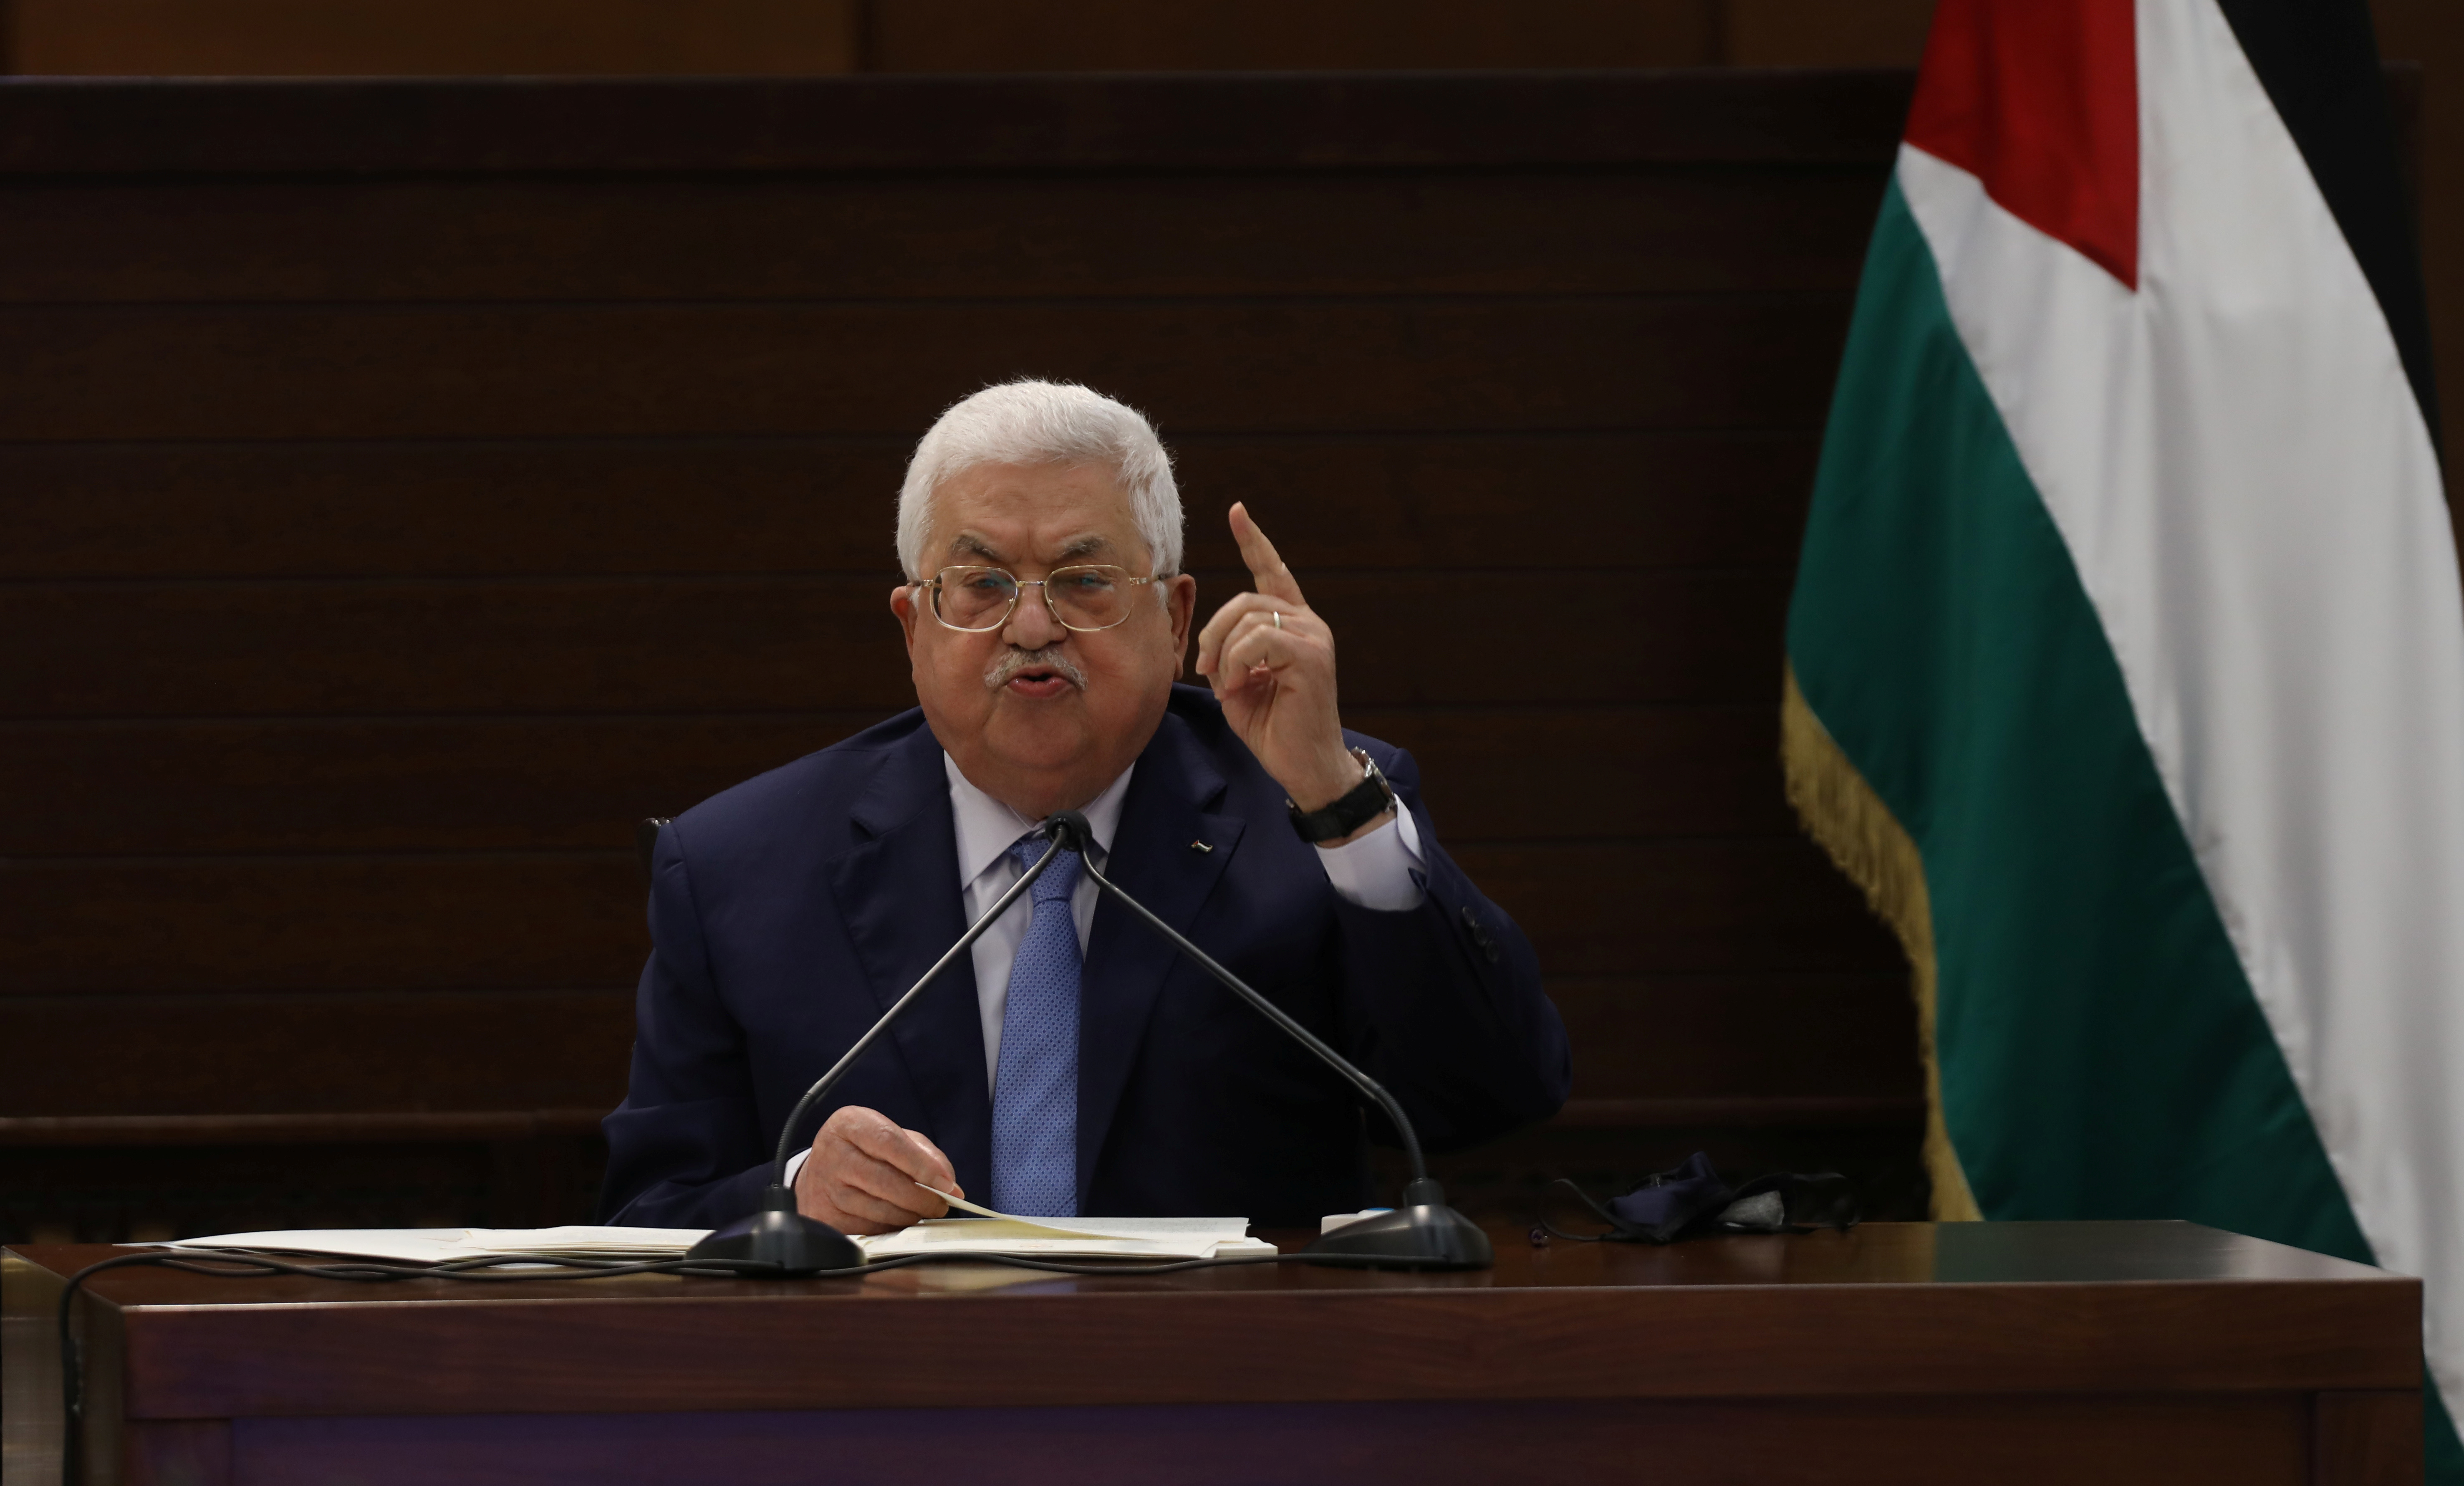 Palestinian President Mahmoud Abbas attends a virtual meeting with Palestinian factions over Israel and the United Arab Emirates' deal to normalise ties, in Ramallah in the Israeli-occupied West Bank September 3, 2020. Alaa Badarneh/Pool via REUTERS